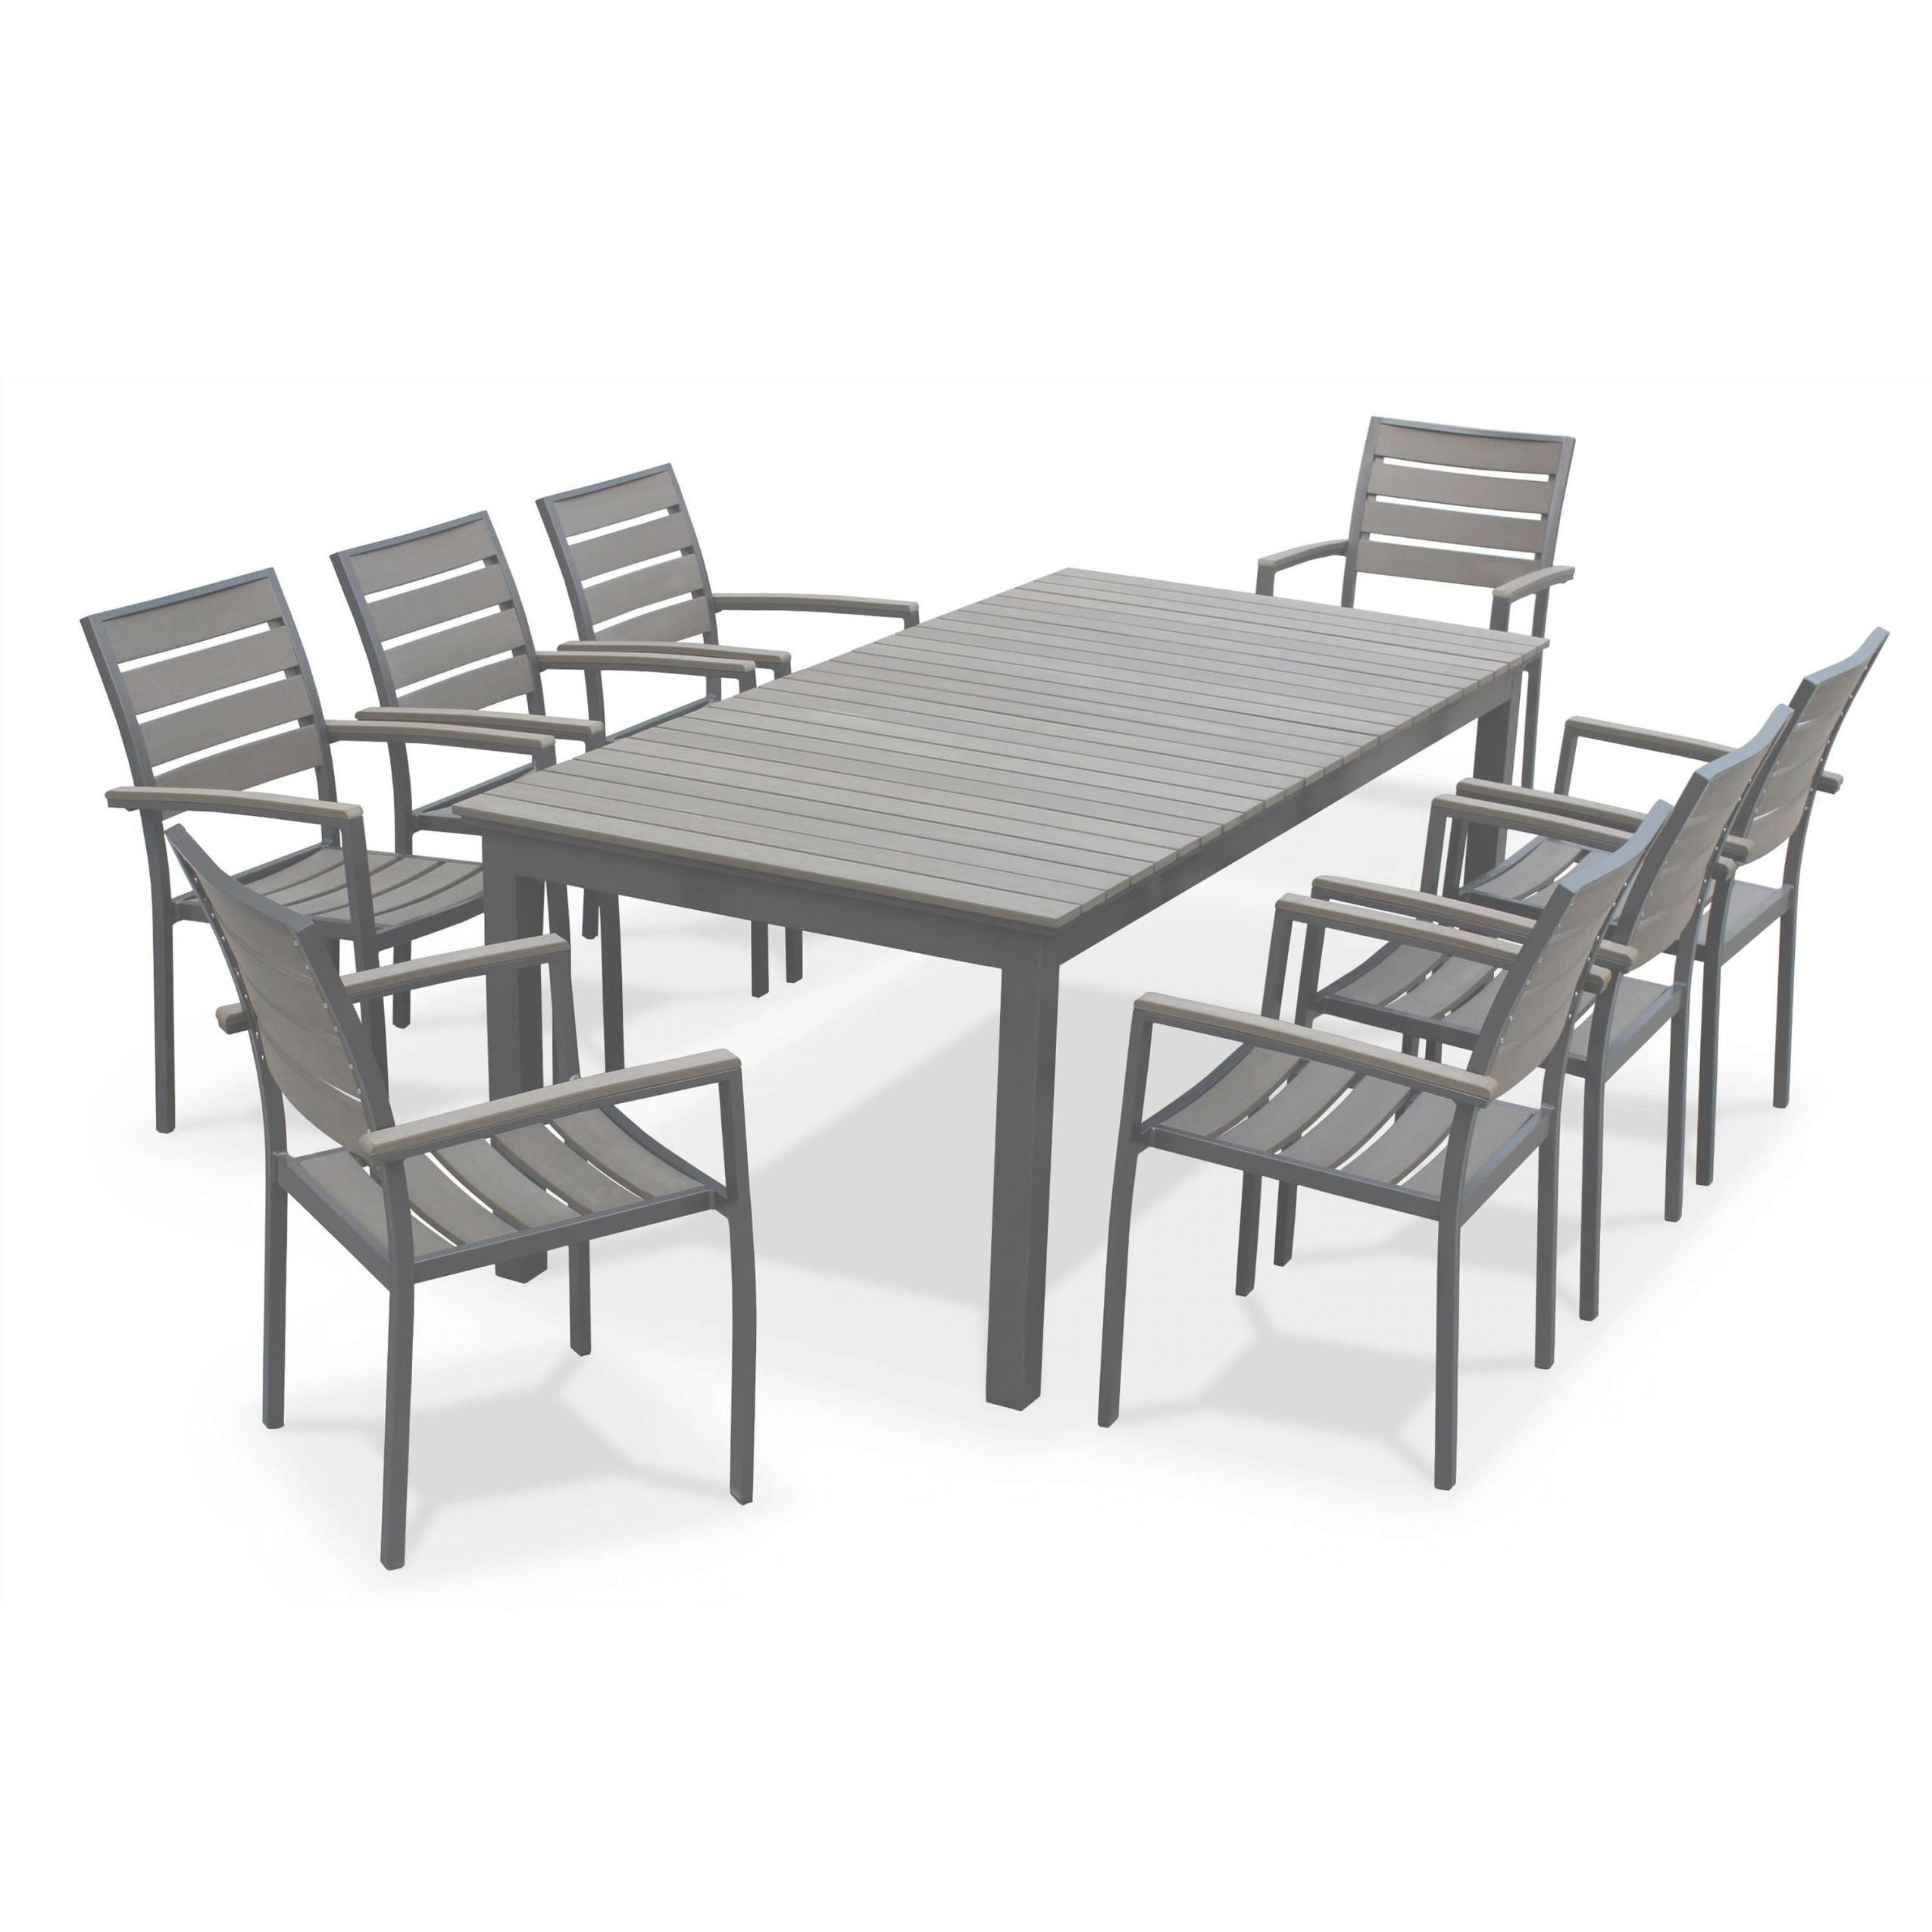 Kettler Salon De Jardin Table De Jardin A Rallonges Loft Kettler